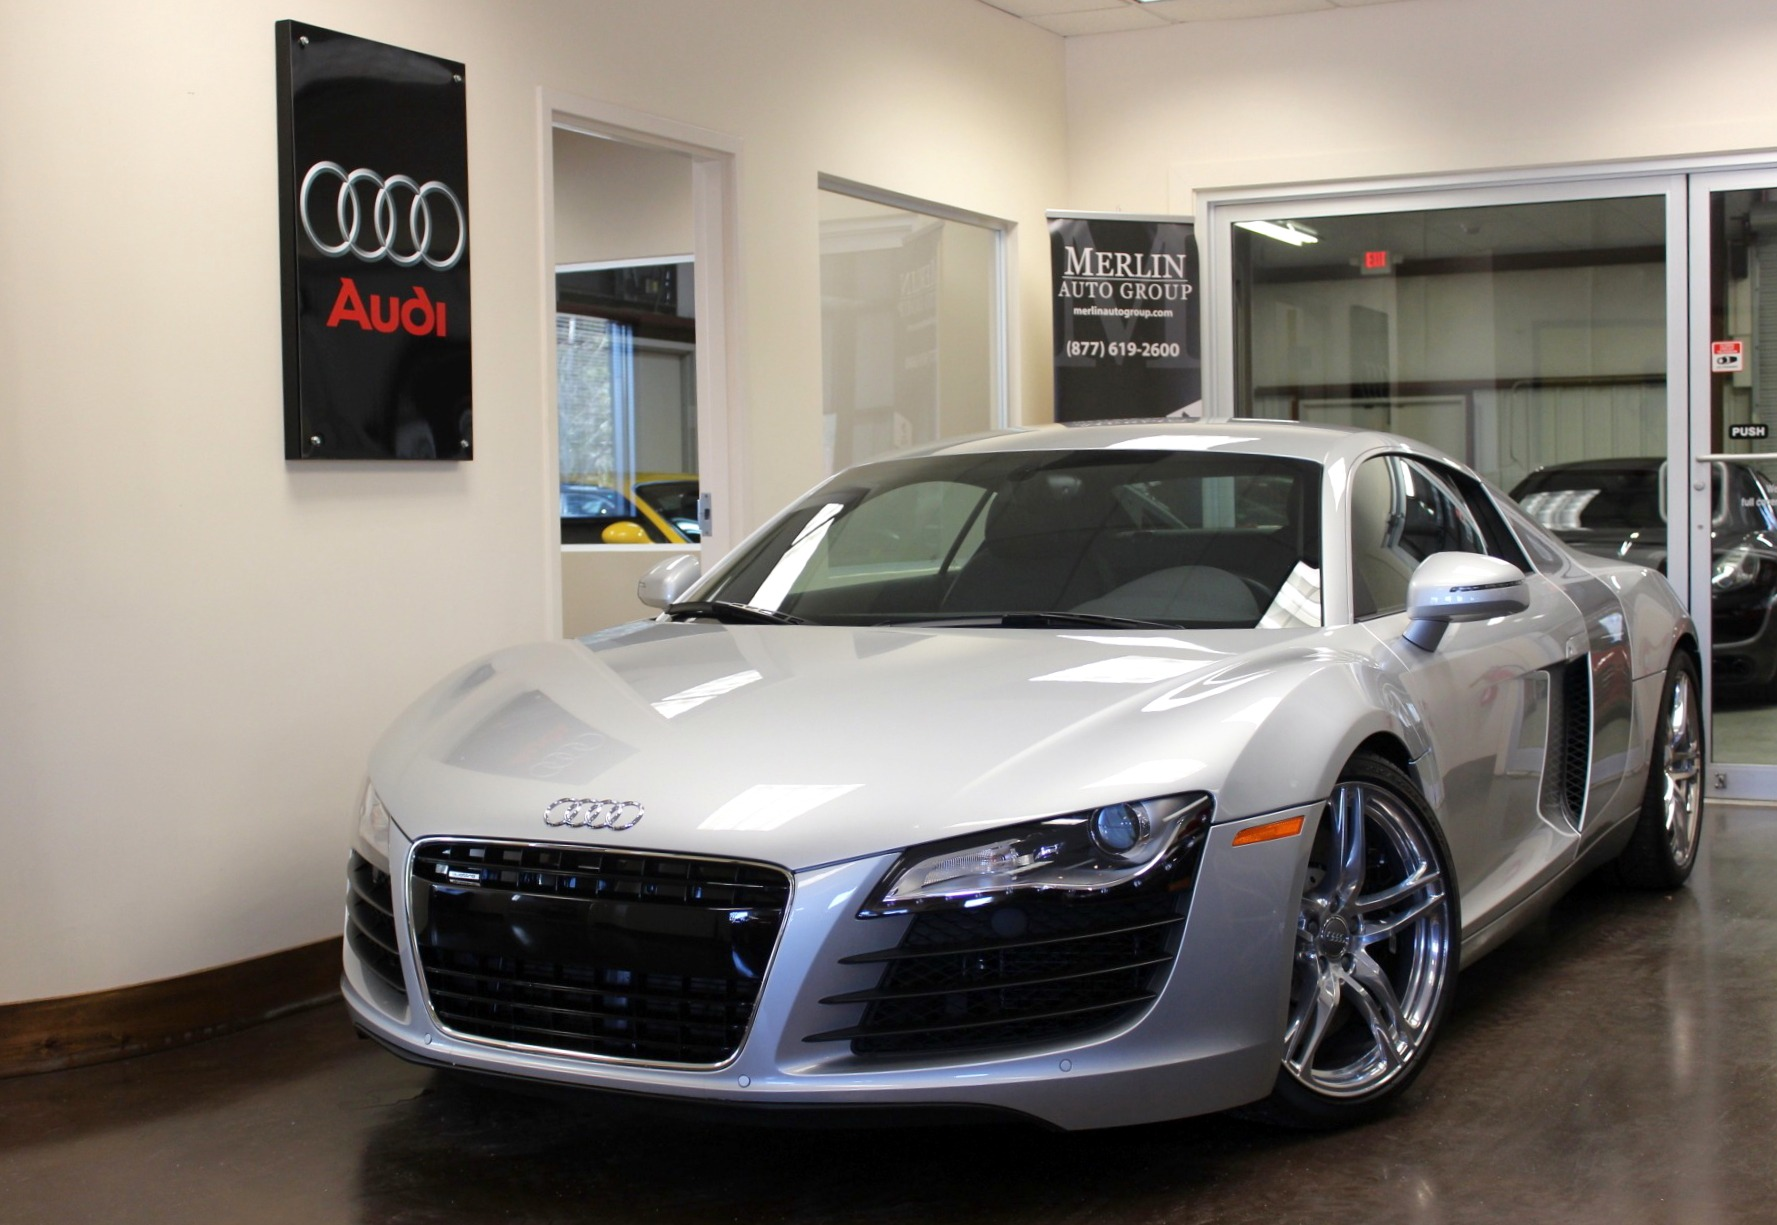 hight resolution of 2009 audi r8 coupe quattro